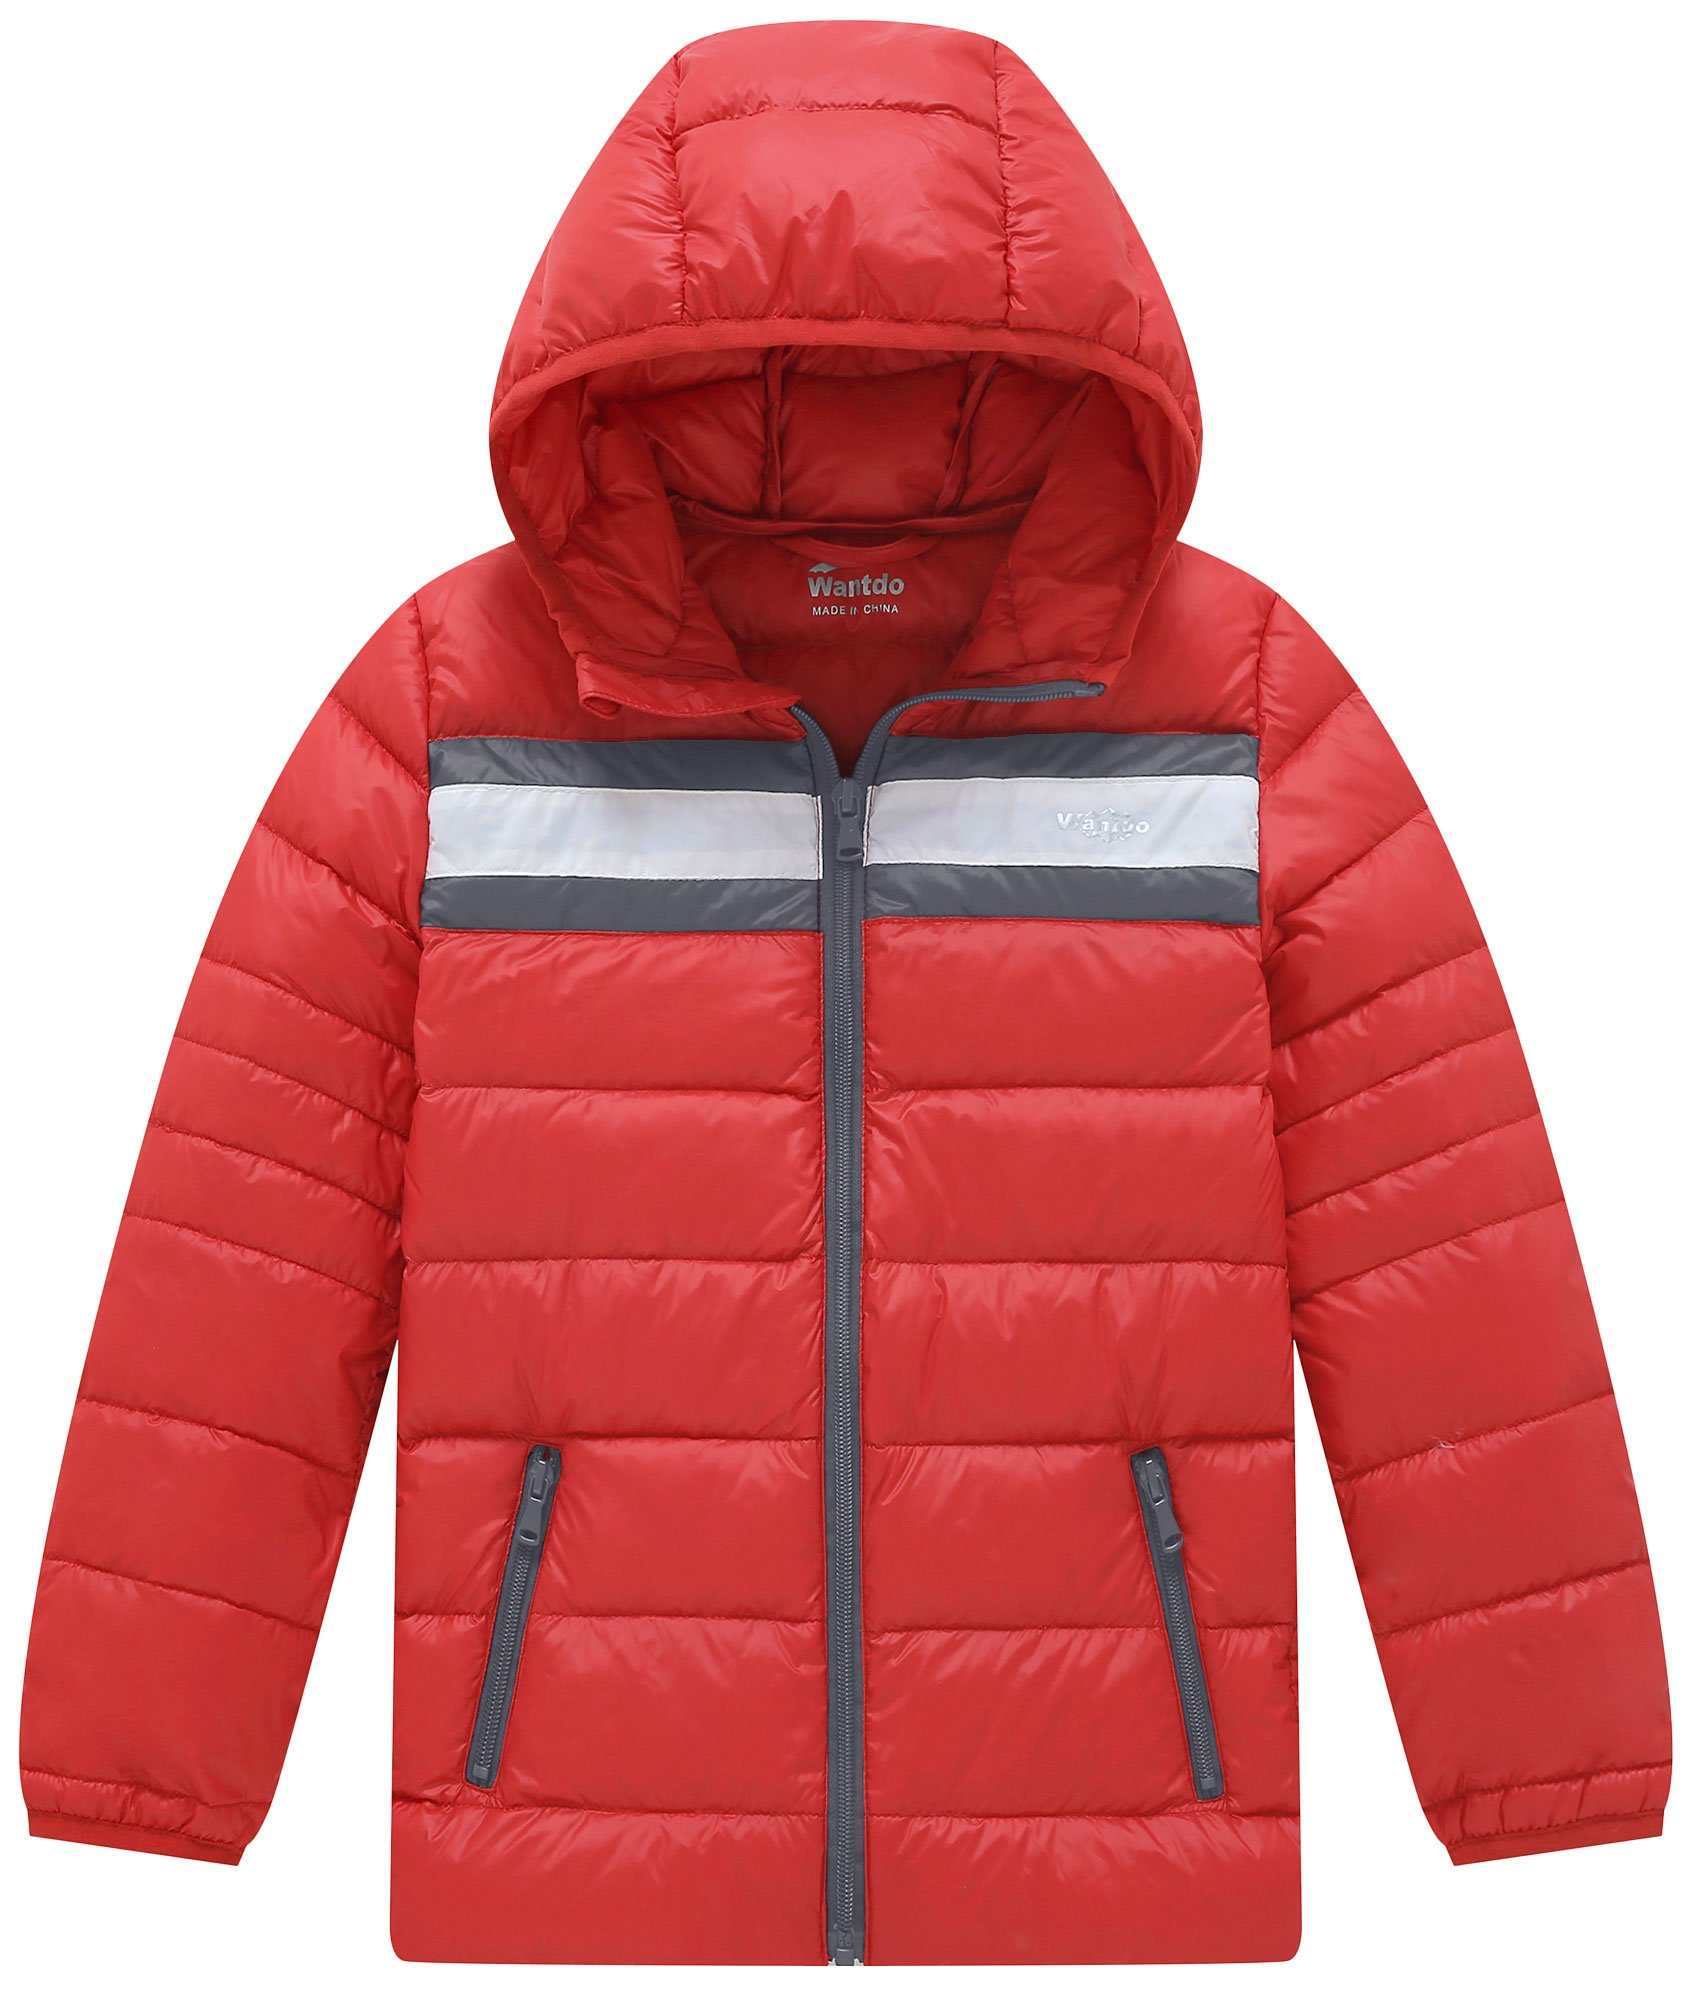 Wantdo Boy's Light Weight Casual Winter Jacket with Hood Down Coats Zippered Outwear(Lily Orange Red, 10/12)